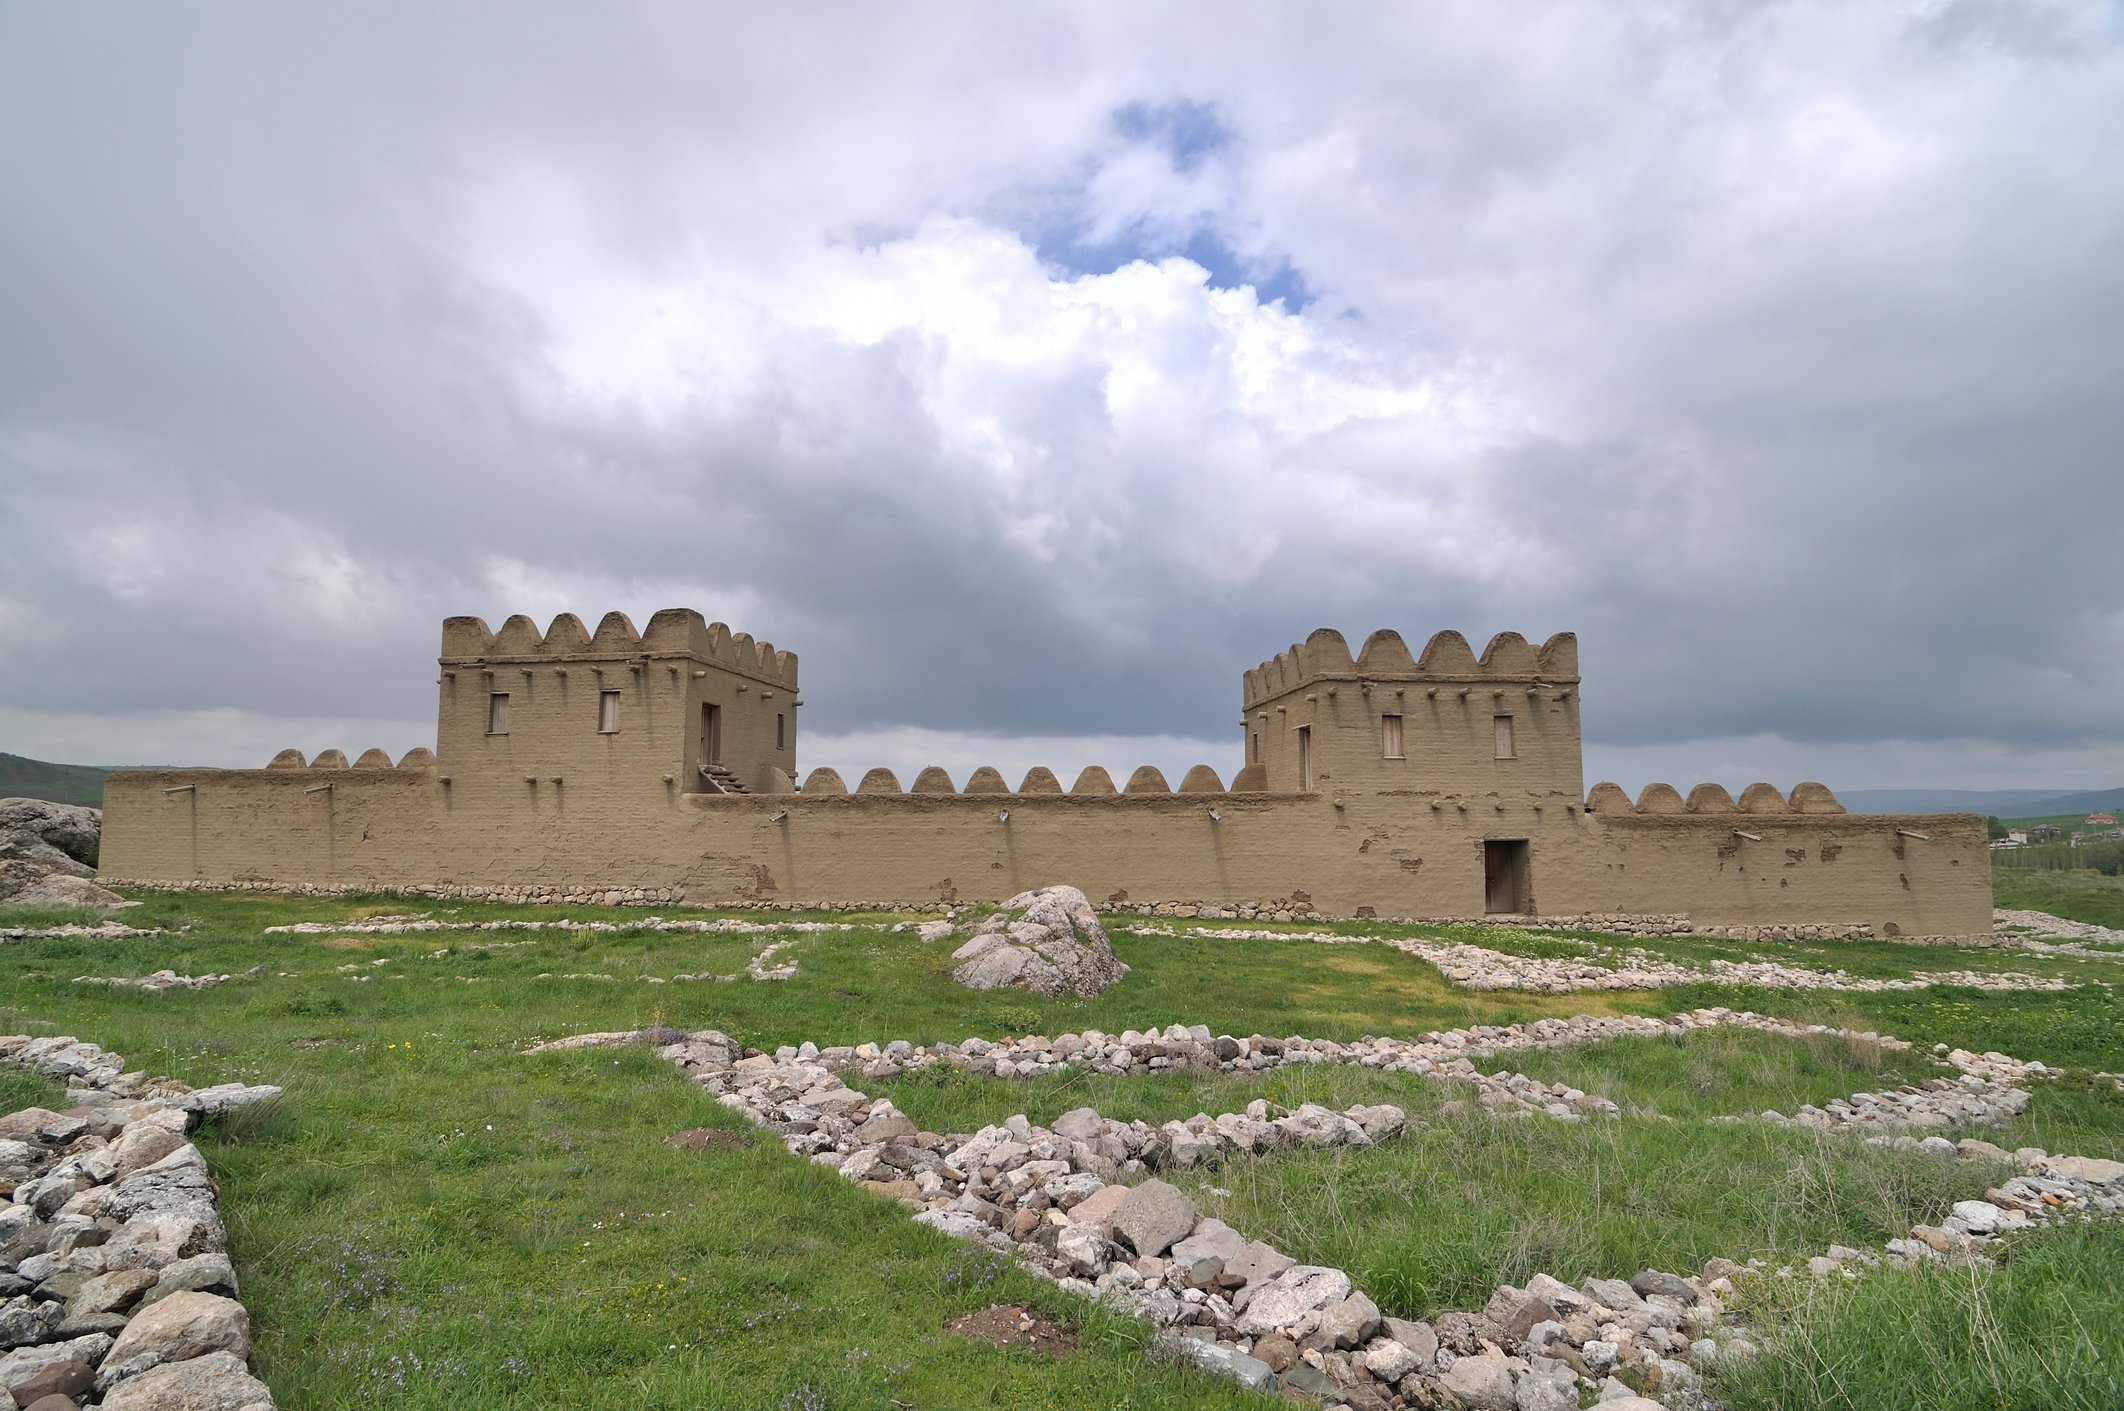 Parts of the Hittite Fortress have been reconstructed. (iStock Photo)